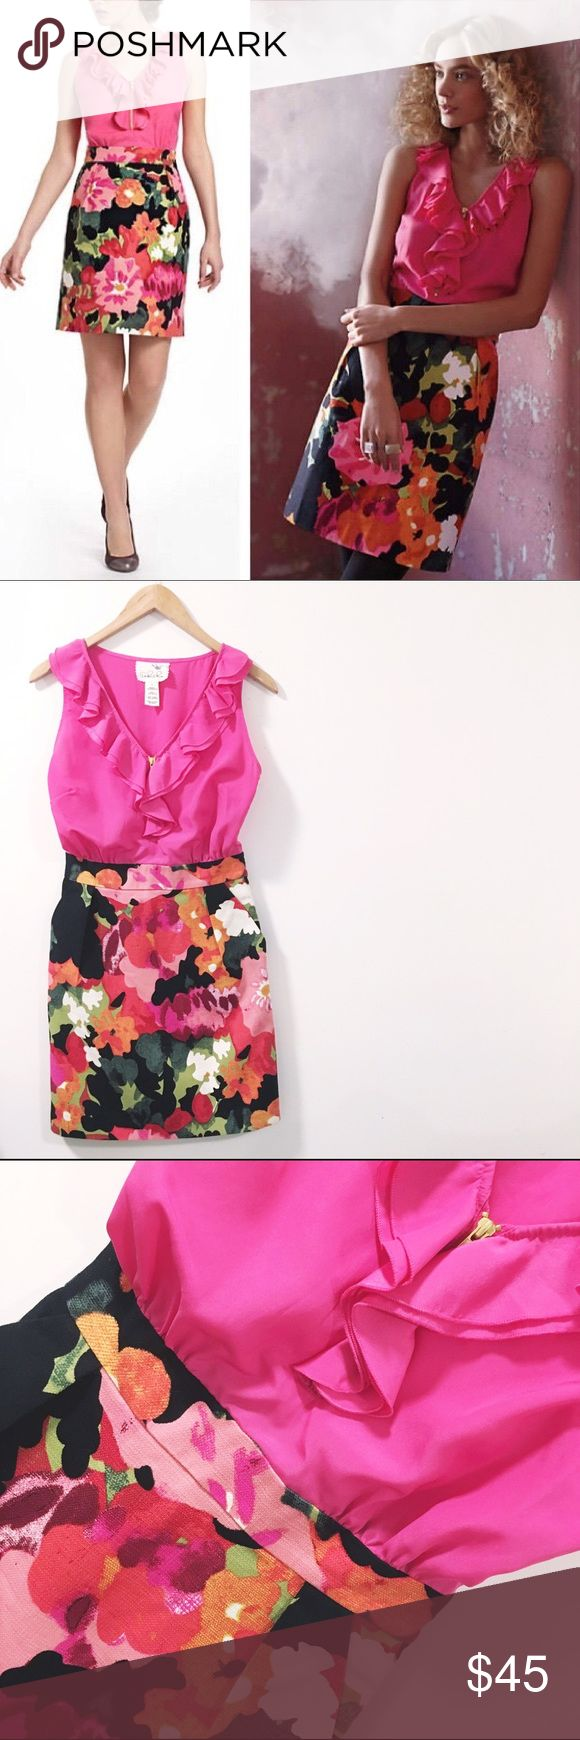 🌸🌺 Anthro Tabitha Great Escape Dress 🌺🌸 Tabitha never disappoints! Ruffles are in right now! Love love love the color and floral pattern in the skirt. You'll definitely stand out in this beauty 😍 This item has never been worn and so it's NWOT!   💁🏾✨Happy Poshing!  🌟 Suggested User 🌟 🙋🏾 Top 10% Sharer/Mentor ⭐️⭐️⭐️⭐️⭐️ 5 star Gal 📫 Fast Shipper!  Ships Same/Next Day📦  🏡 Odor Free 🐩 Pet Free 🚫 PayPal/Trade/low ball offers Anthropologie Dresses Midi